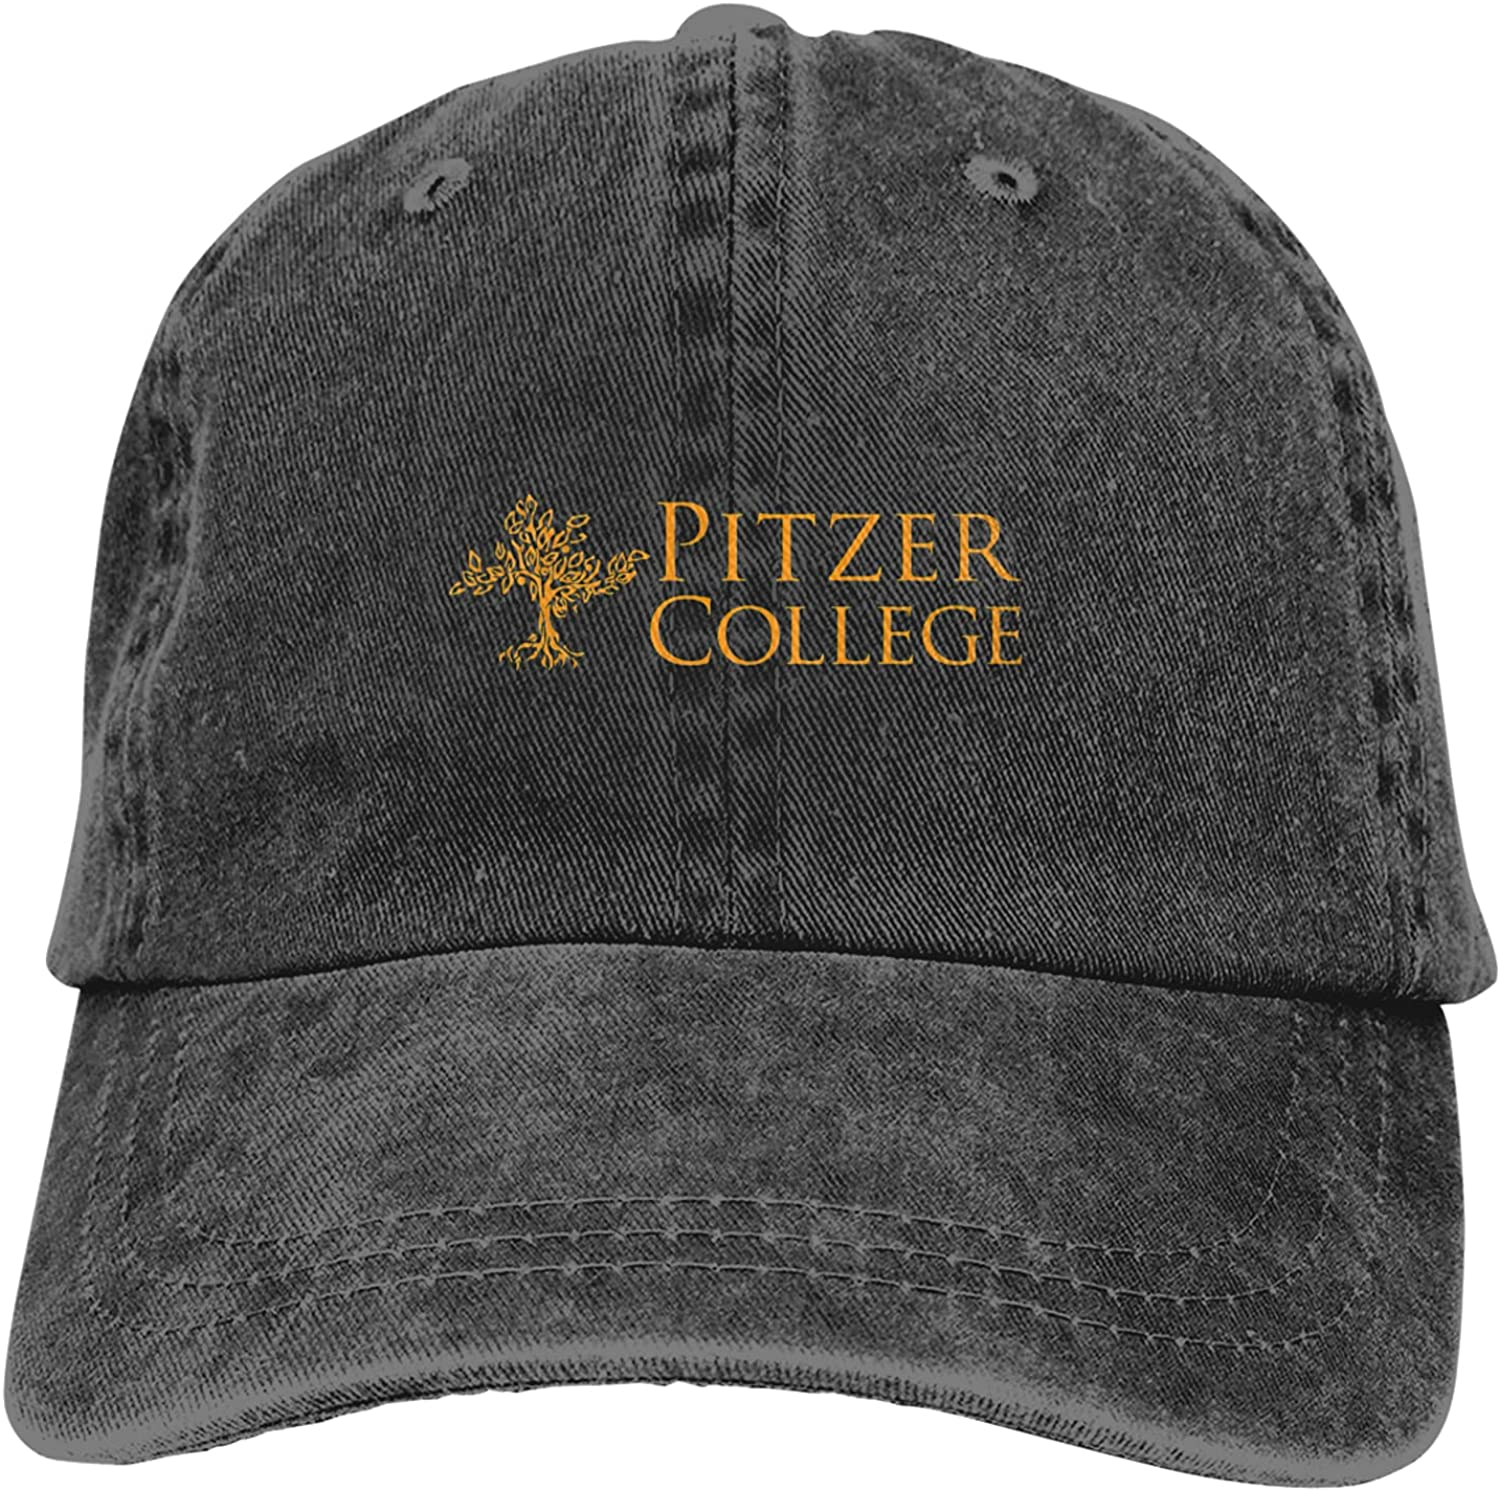 Yund Pitzer College Cap Students. Suitable Adjustabl for Max Houston Mall 57% OFF